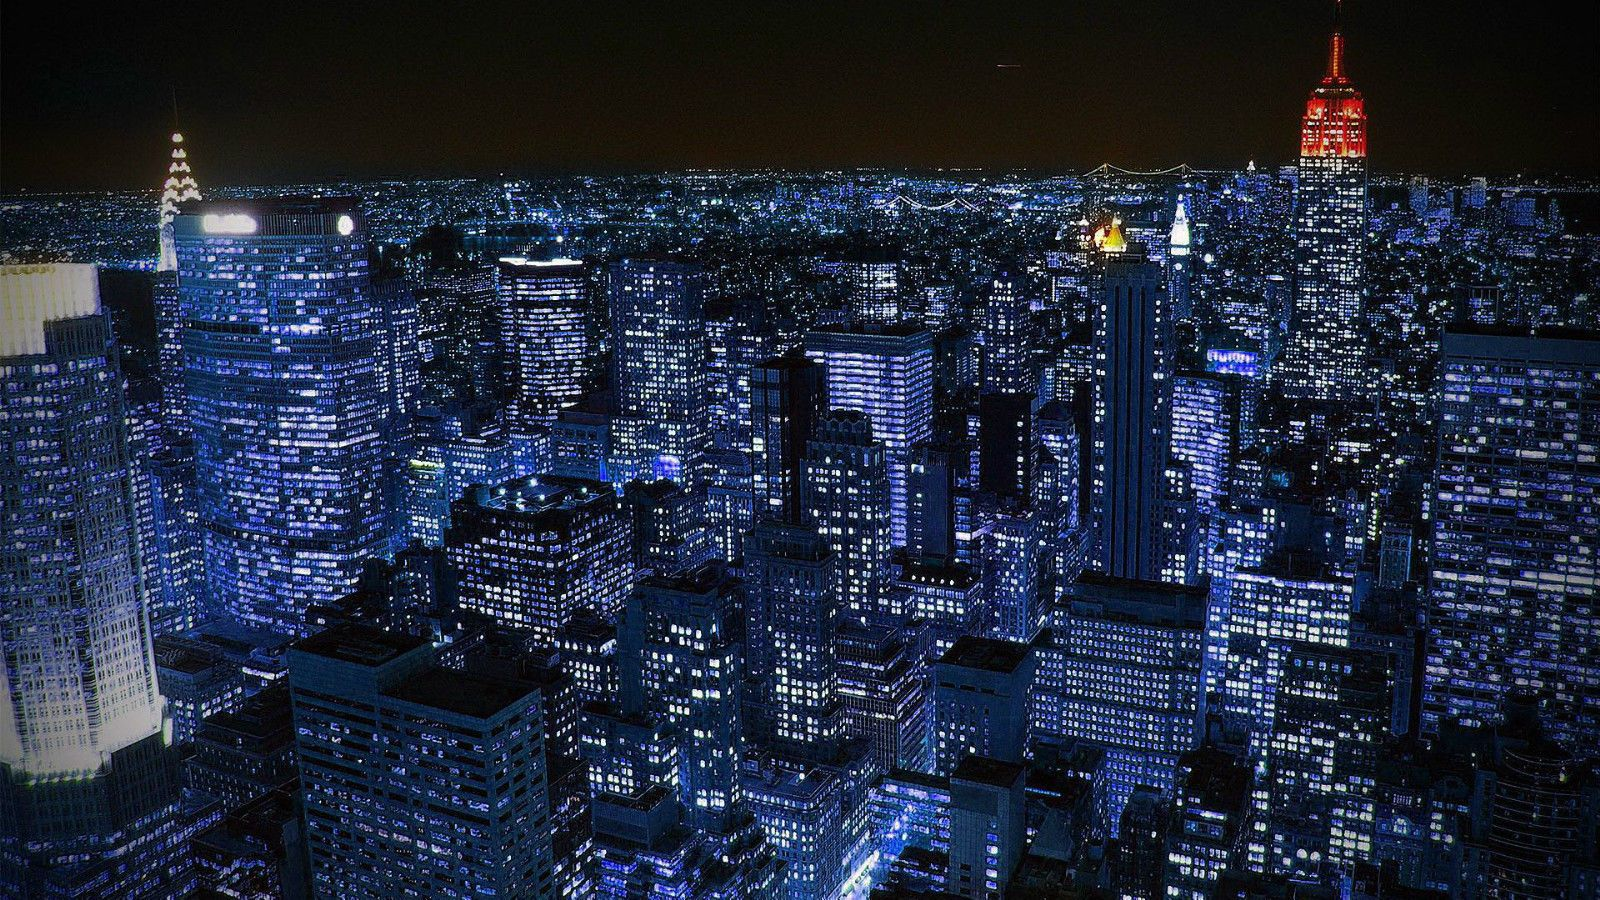 New York Cityscape Nightime A1 Size Print Canvas City Usa Manhatten City Wallpaper New York City Background Nyc At Night